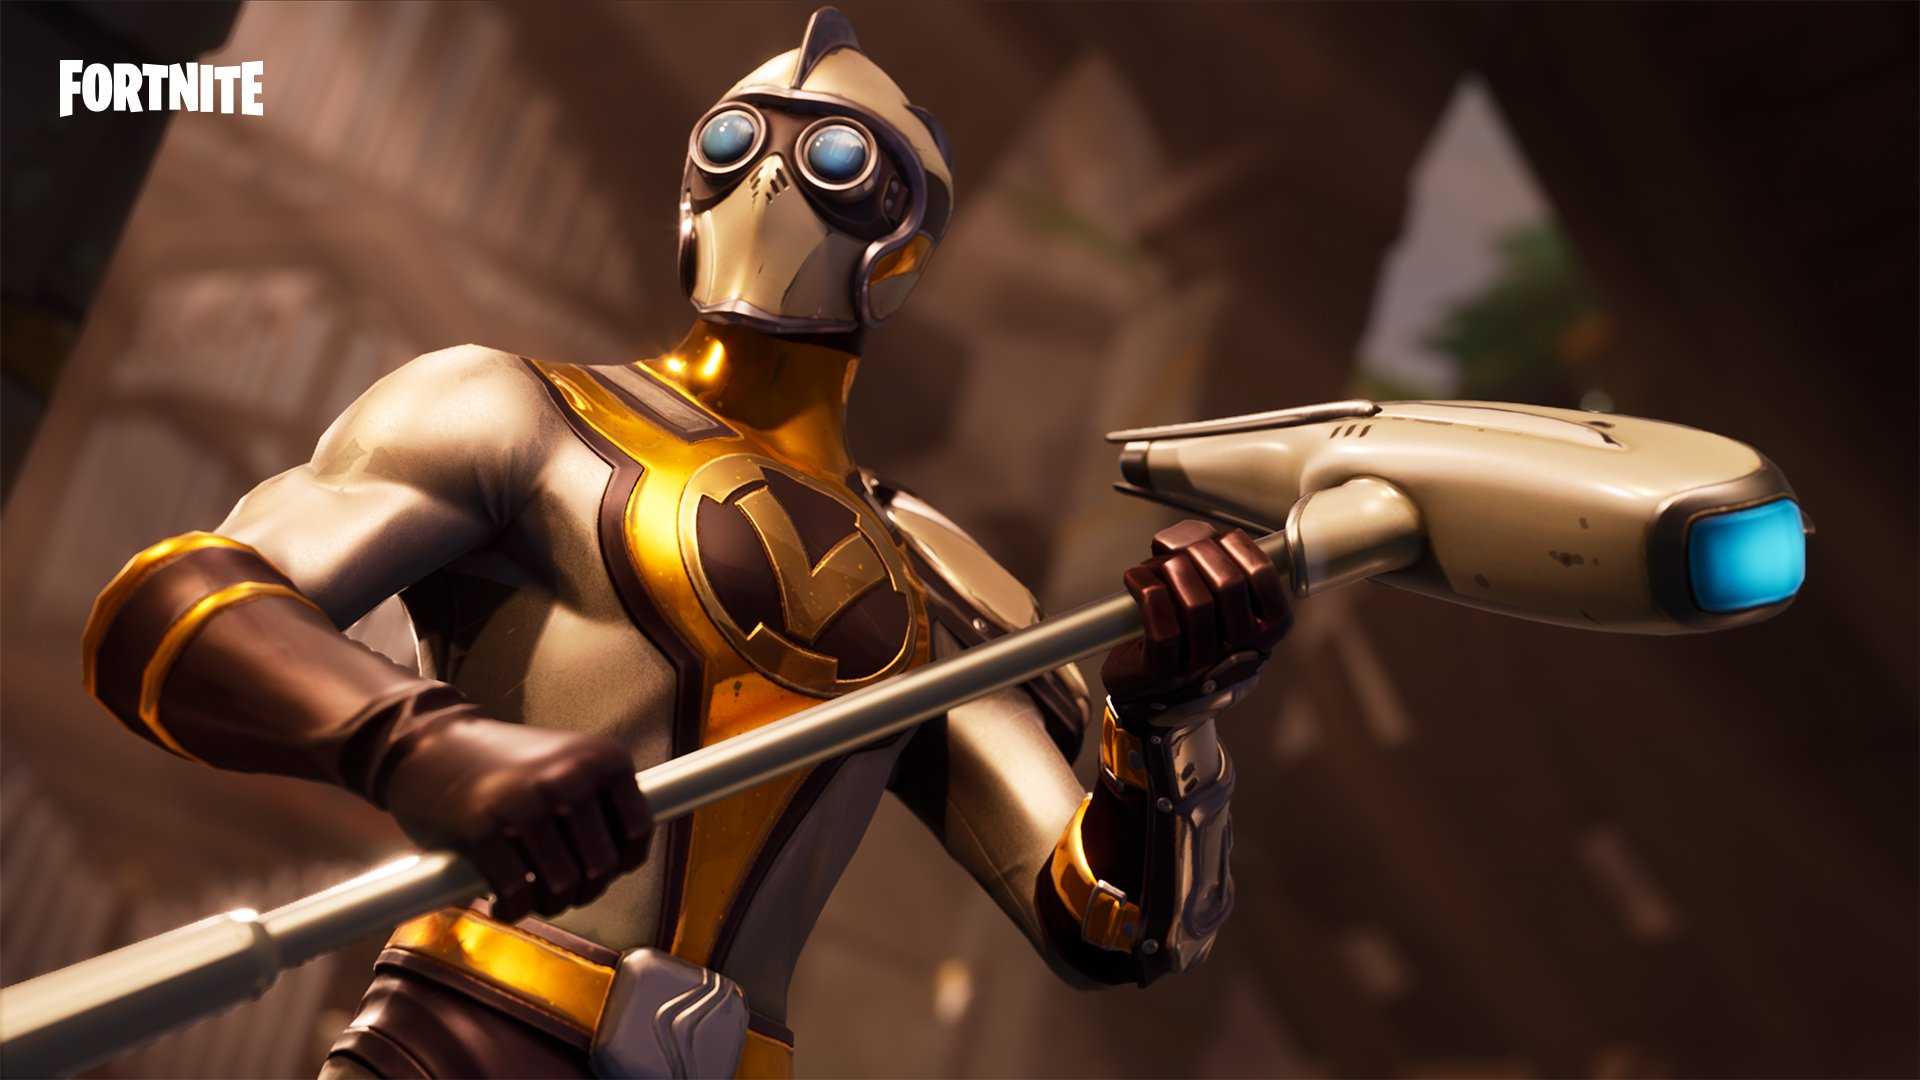 Fortnite Wallpapers Fortnite Wallpapers T Xbox